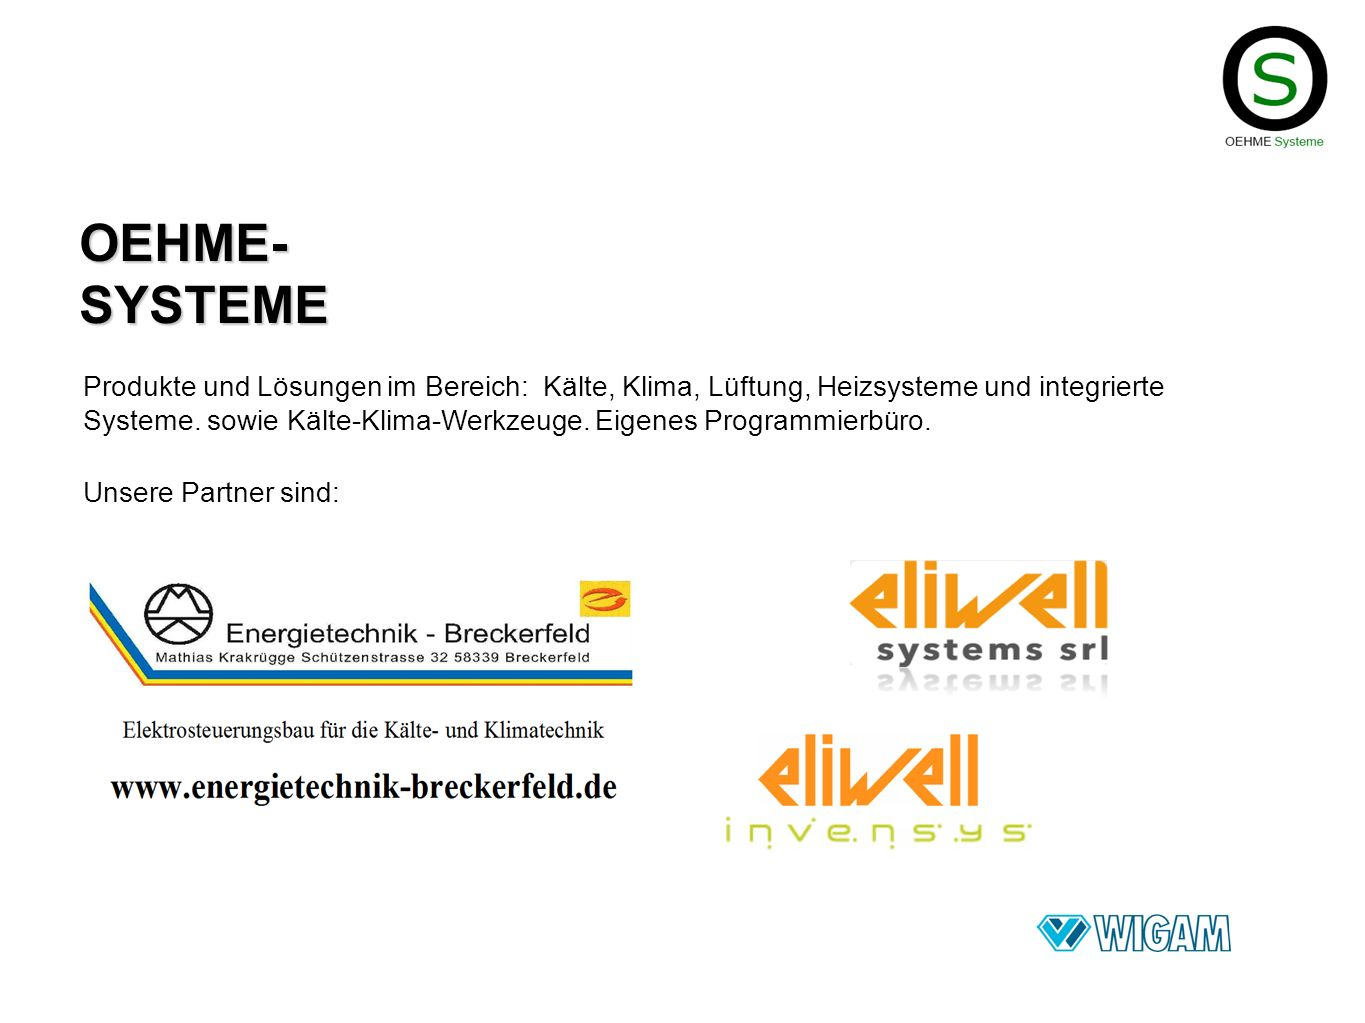 OEHME-SYSTEME